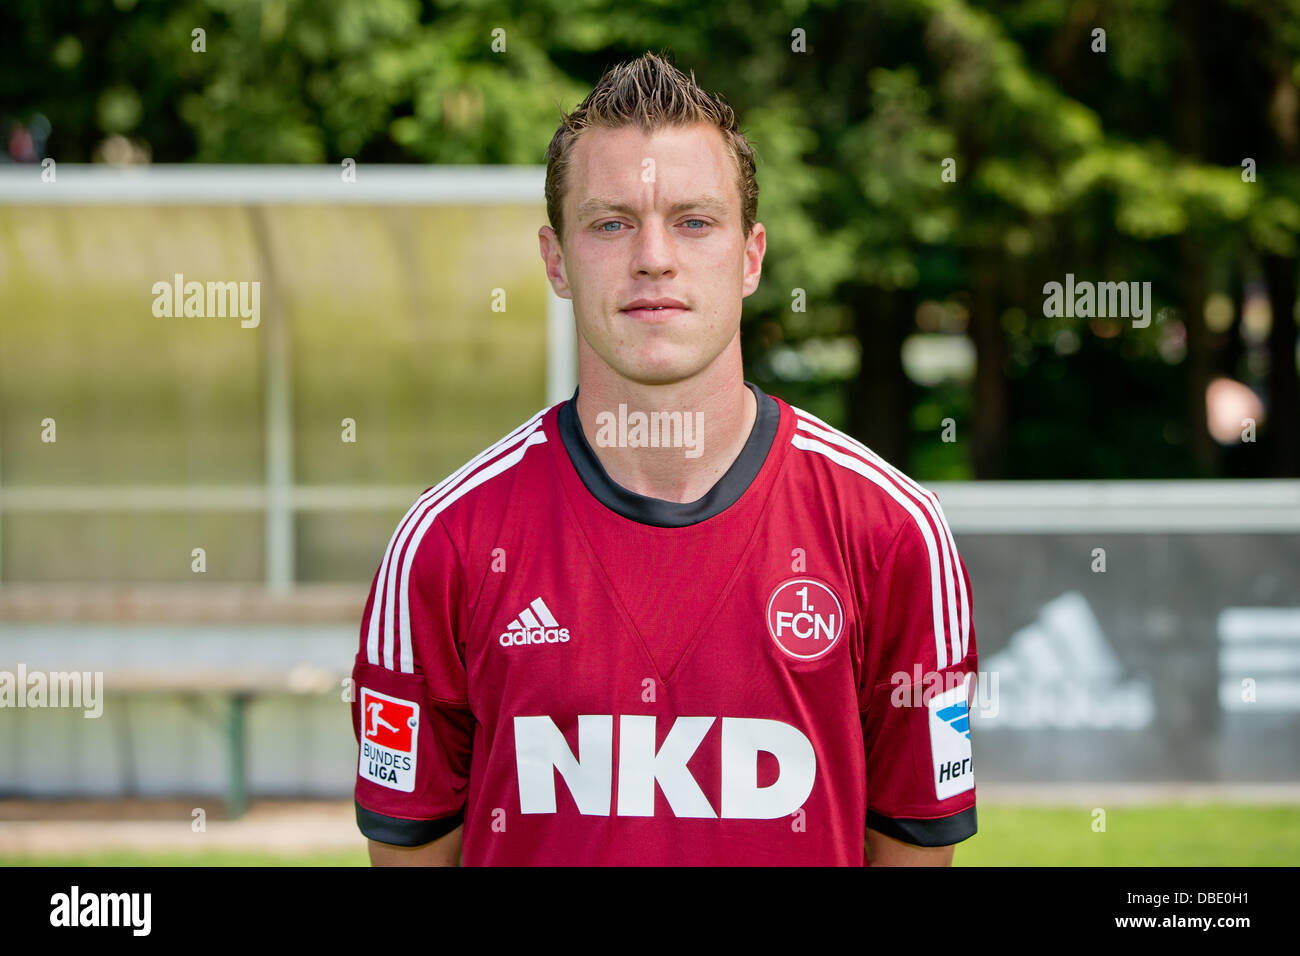 Player Hanno Balitsch of German Bundesliga club 1. FC Nurnberg during the official photocall for the season 2013 - Stock Image